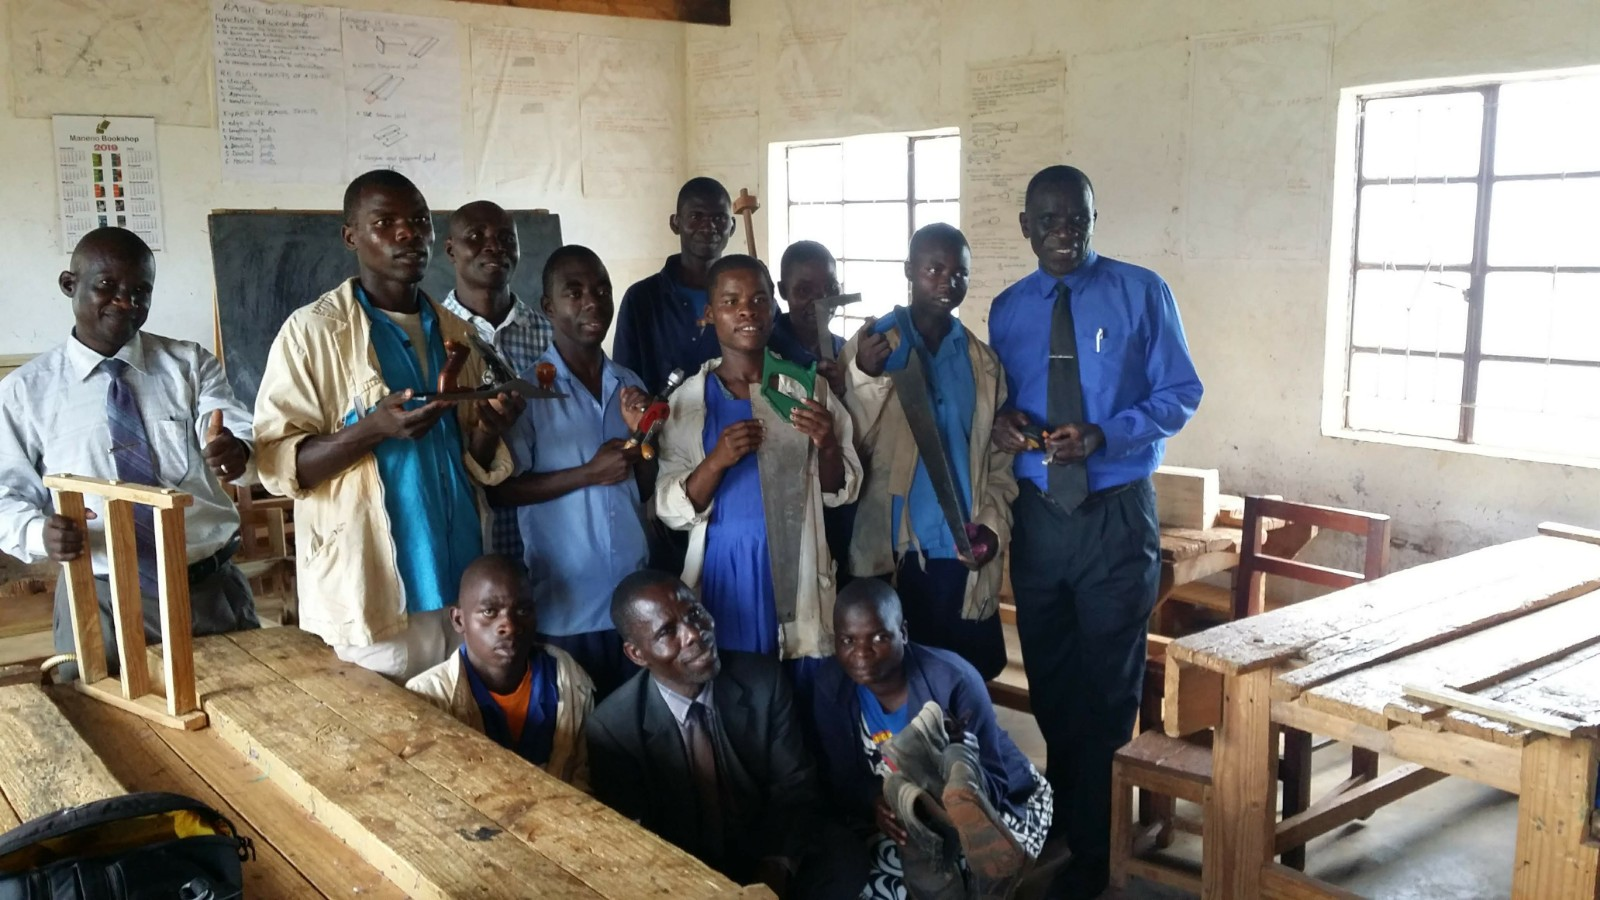 Students from the carpentry shop at the Secondary School of the Deaf in Malawi.